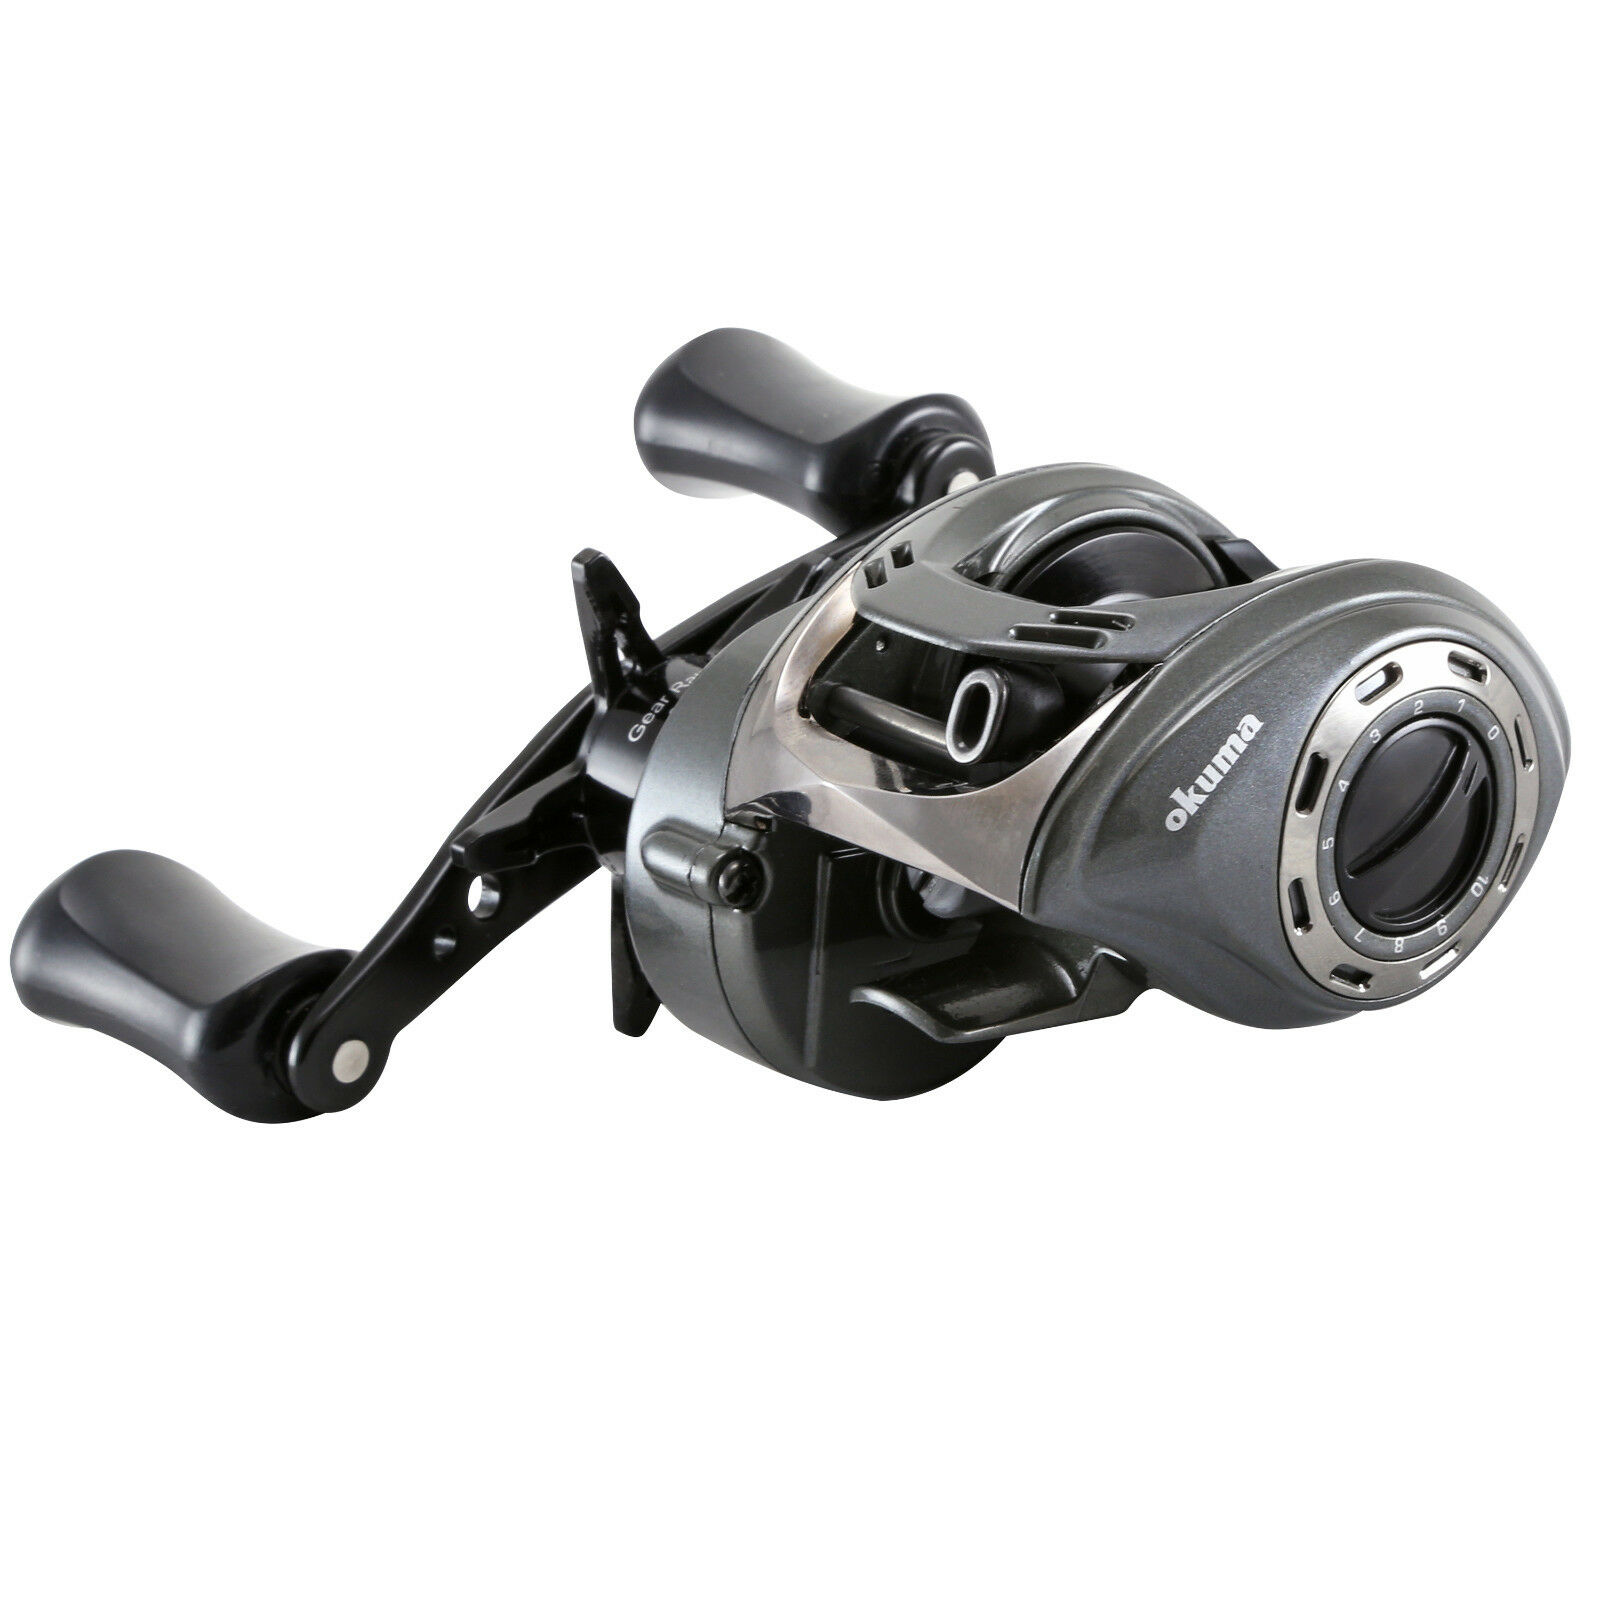 Okuma Calera A Version Low Profile  Reel 7.3 1 Gear Ratio Right Hand CLR-273Va  wholesale cheap and high quality